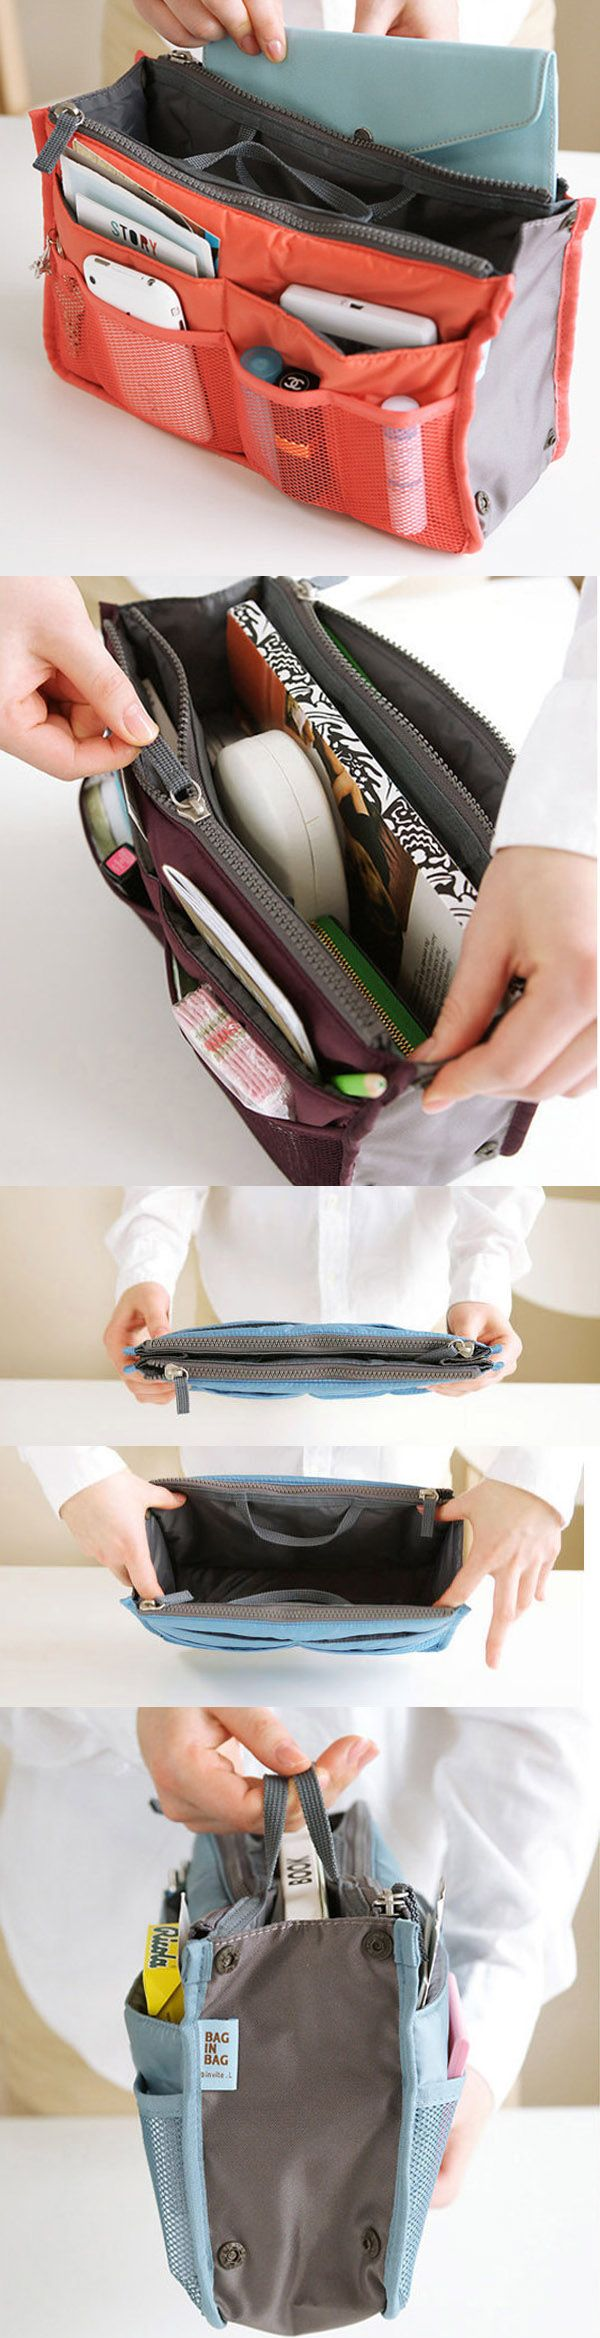 [ONLY US$5] Women Travel Insert Handbag,Nylon Large Liner Organizer Tidy Bag,Cosmetic Bag